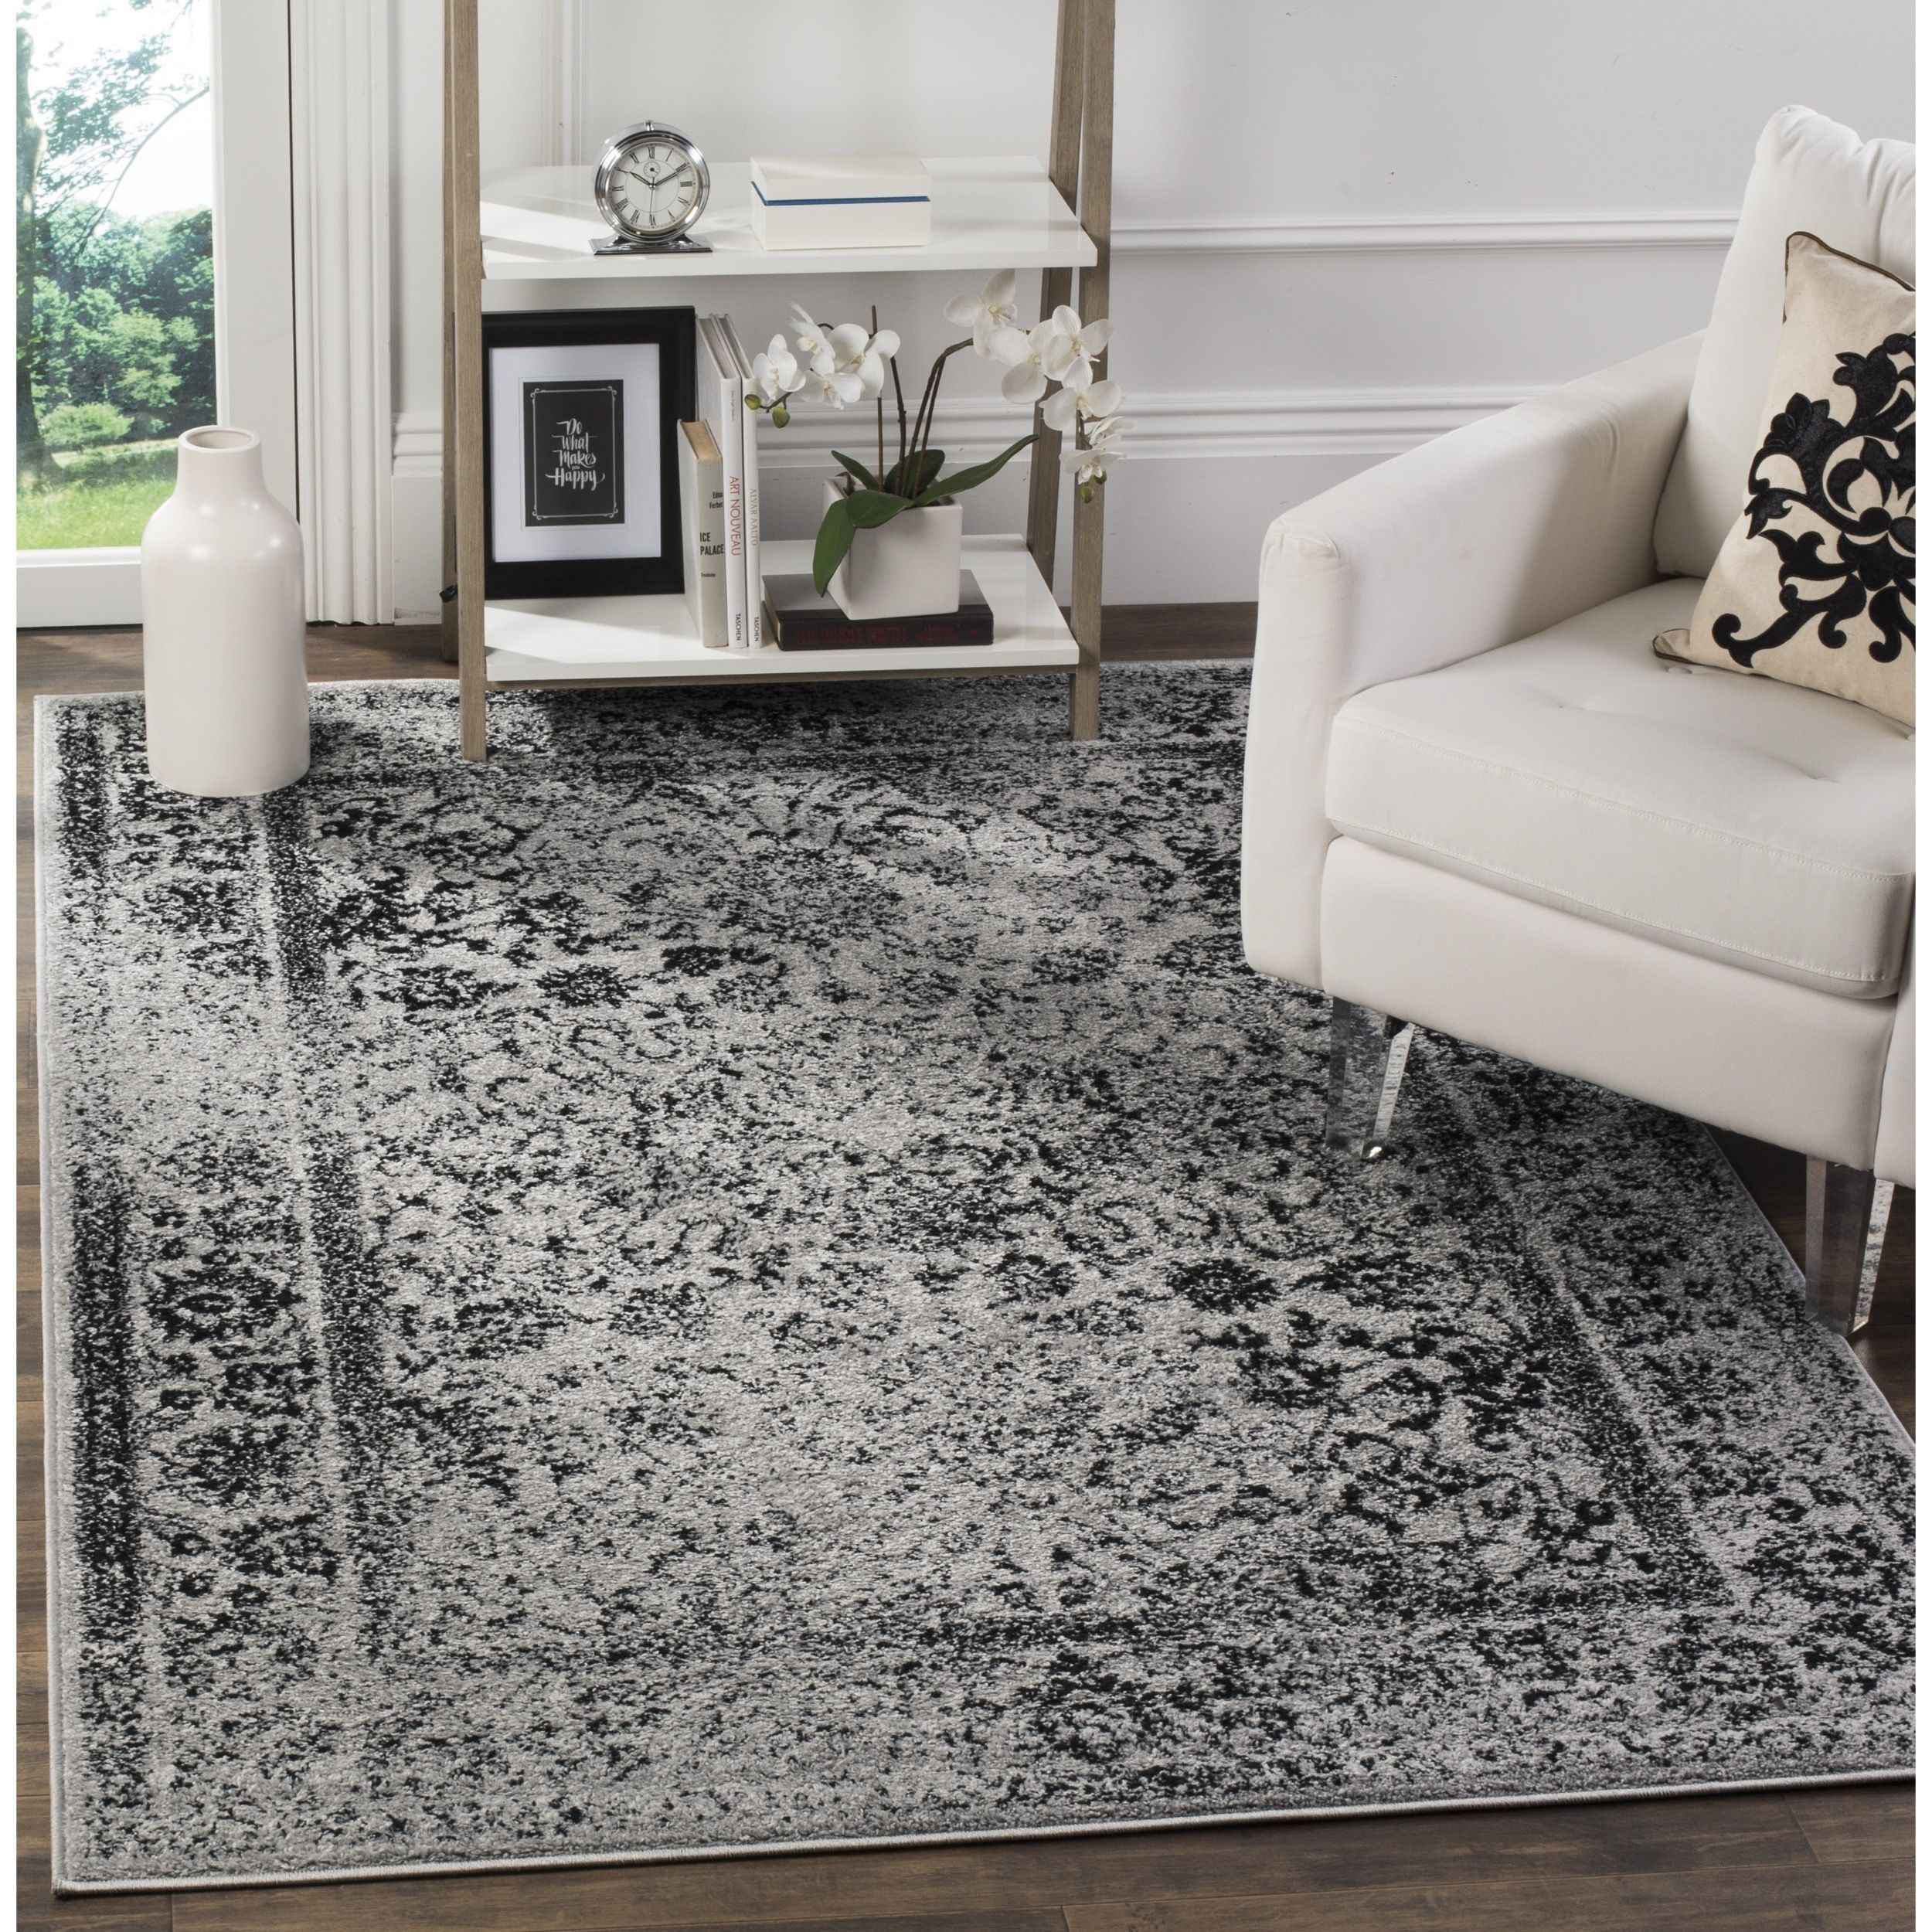 Safavieh Adirondack Vintage Grey Black Rug 10 Square Adr109b 10sq Size 10 X 10 Polypropylene Oriental Distressed Rugs Black Area Rugs Black Rug